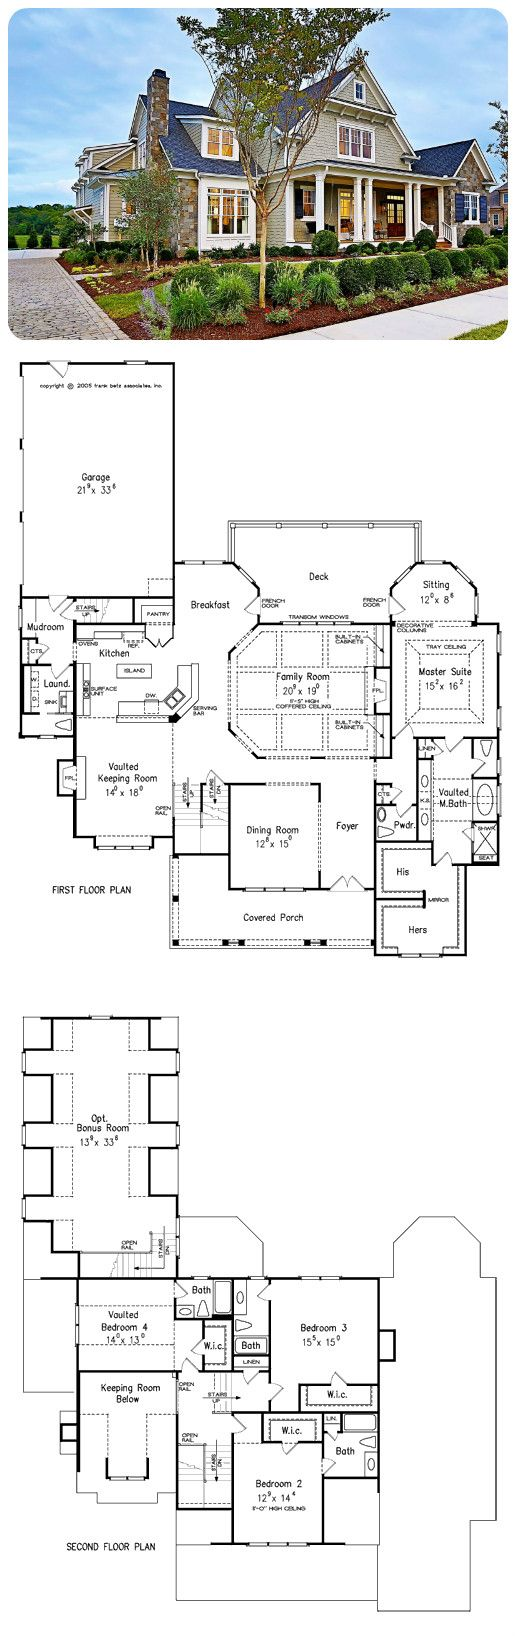 northfield manor a frankbetz plan spacious luxury living is the hallmark of luxury floor planshome design - Home Design Floor Plans